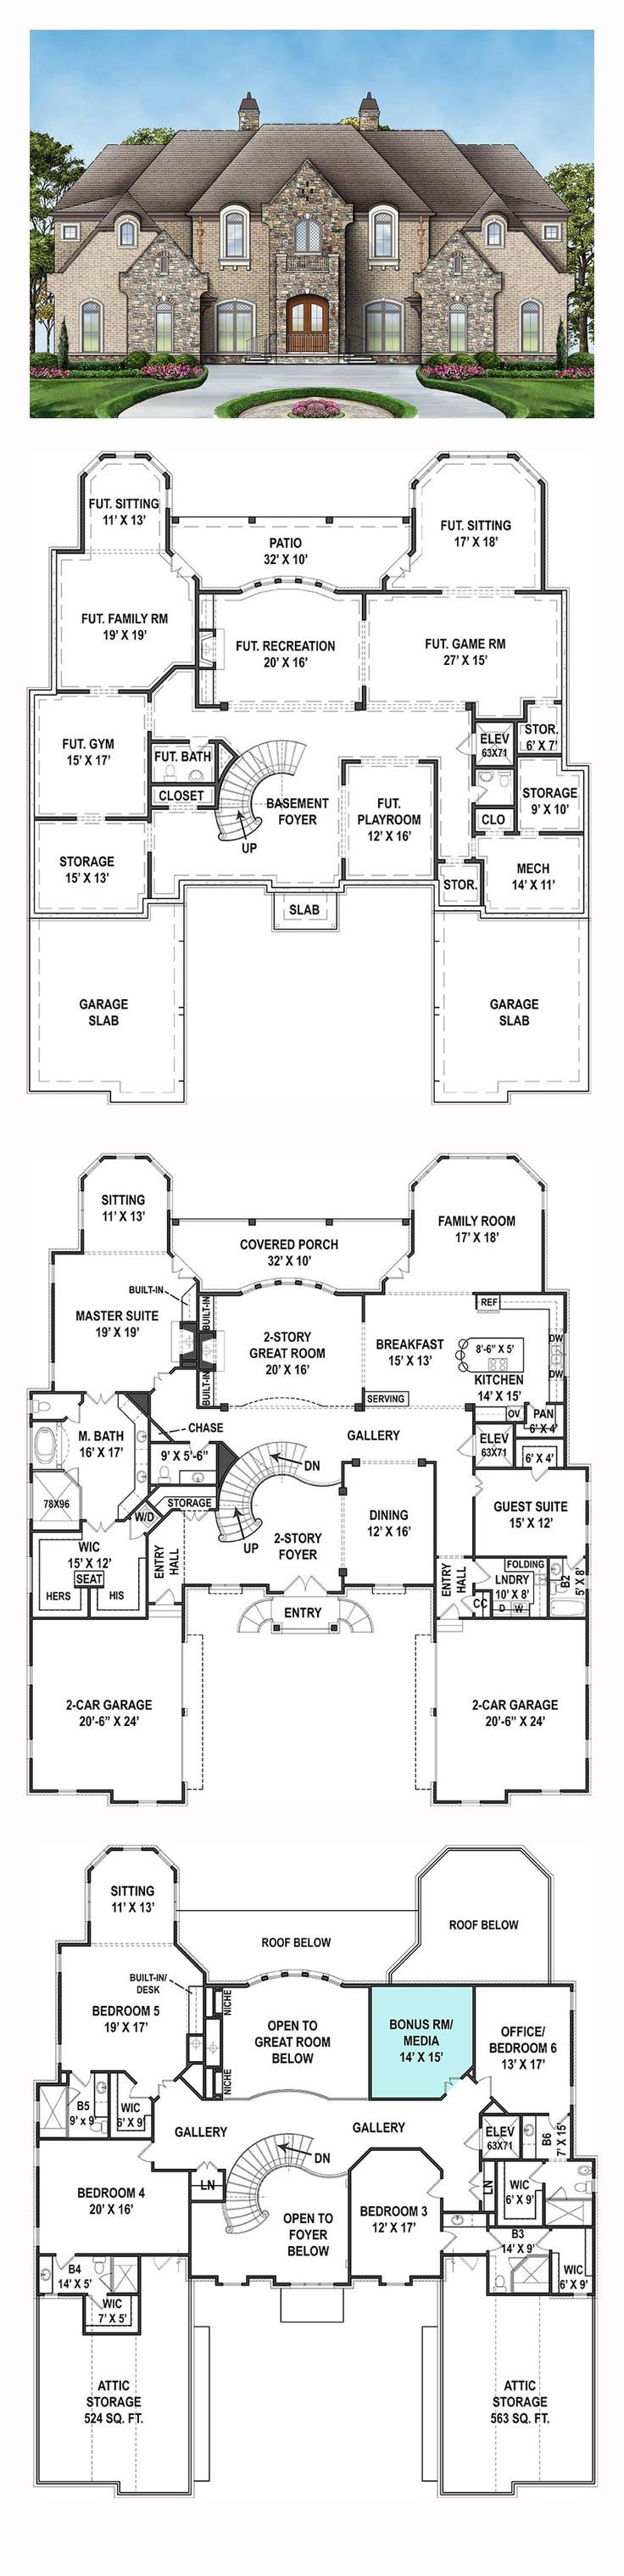 New House Plan 72171 | Total Living Area: 6072 sq. ft., 6 bedrooms and 6.5 bathrooms. #newhomeplan